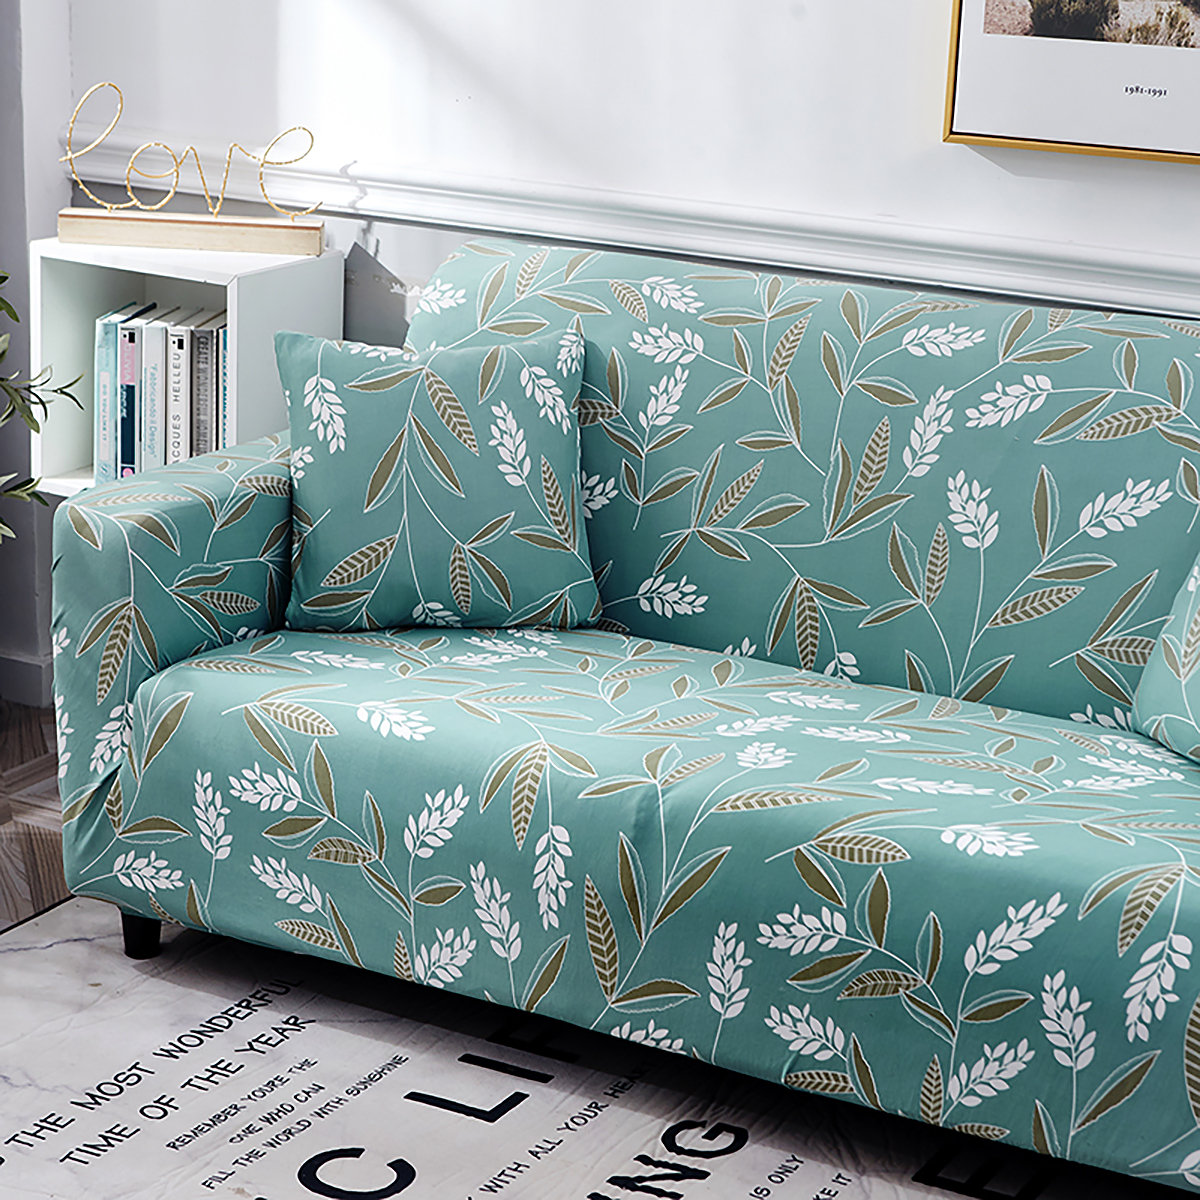 1-2-3-4-SEATER-SOFA-COVERS-Elastic-Fabric-Loveseat-Couch-Settee-Slipcover miniatuur 55